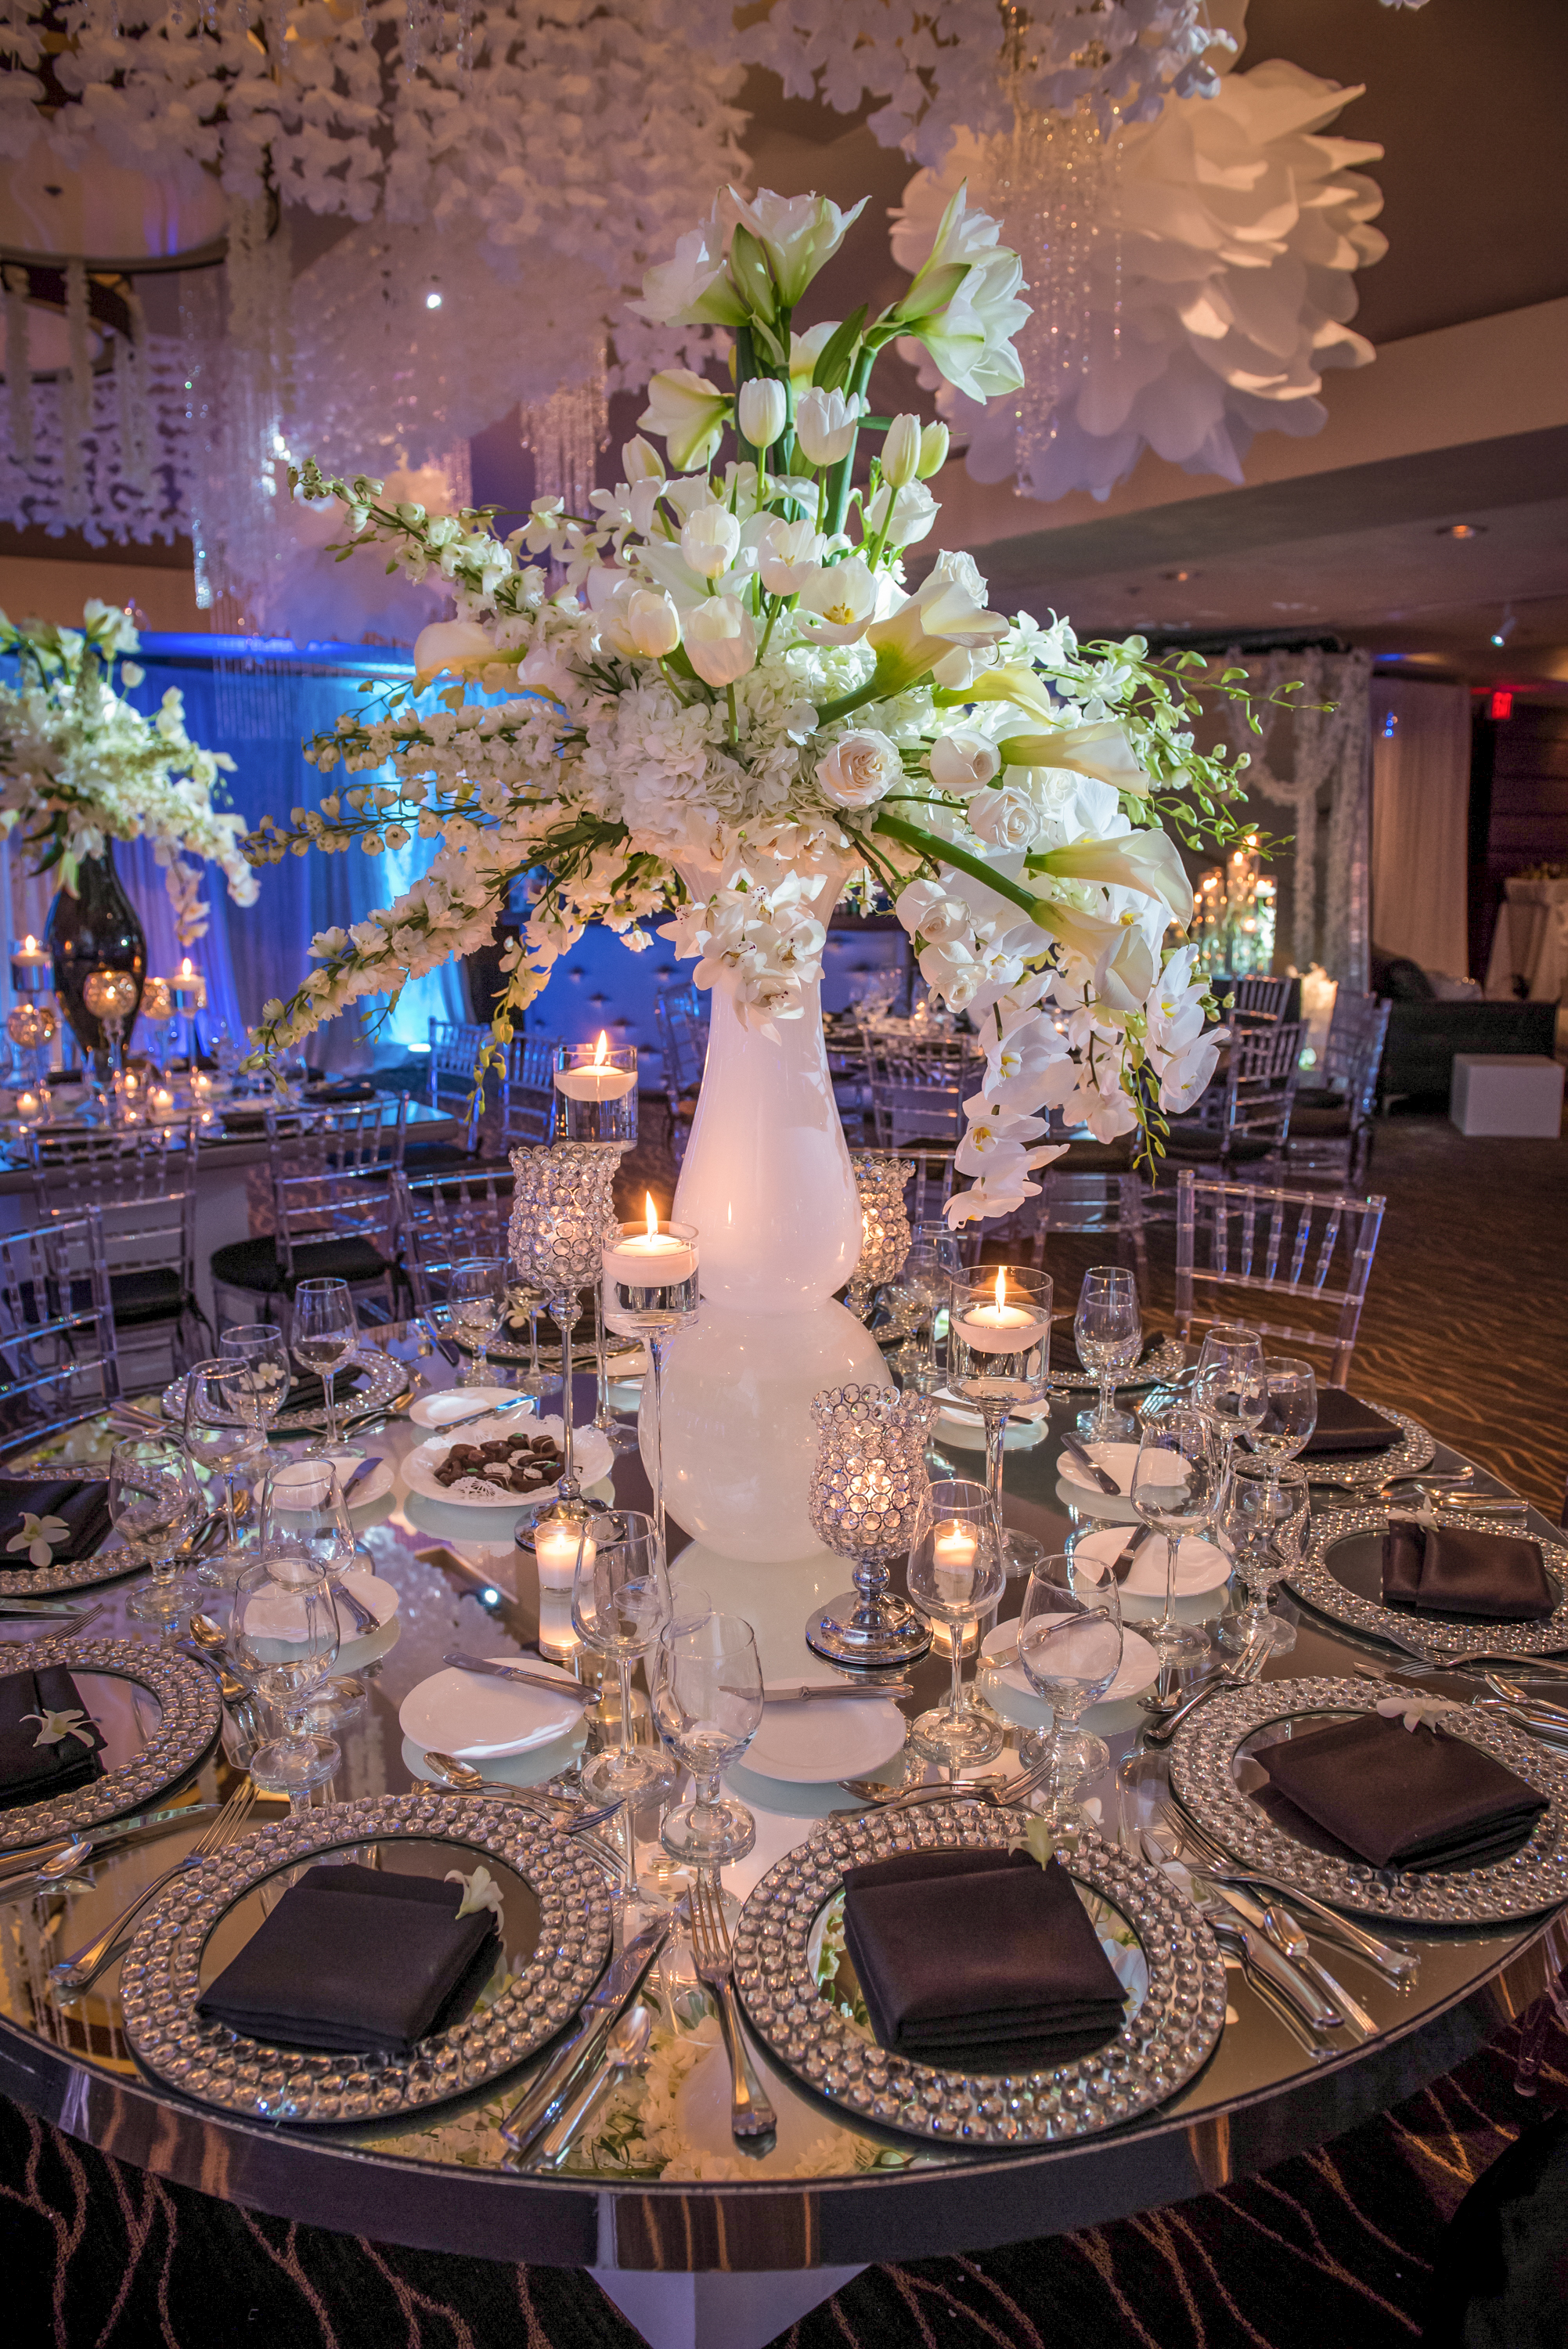 Beautiful reception with tall white centerpiece